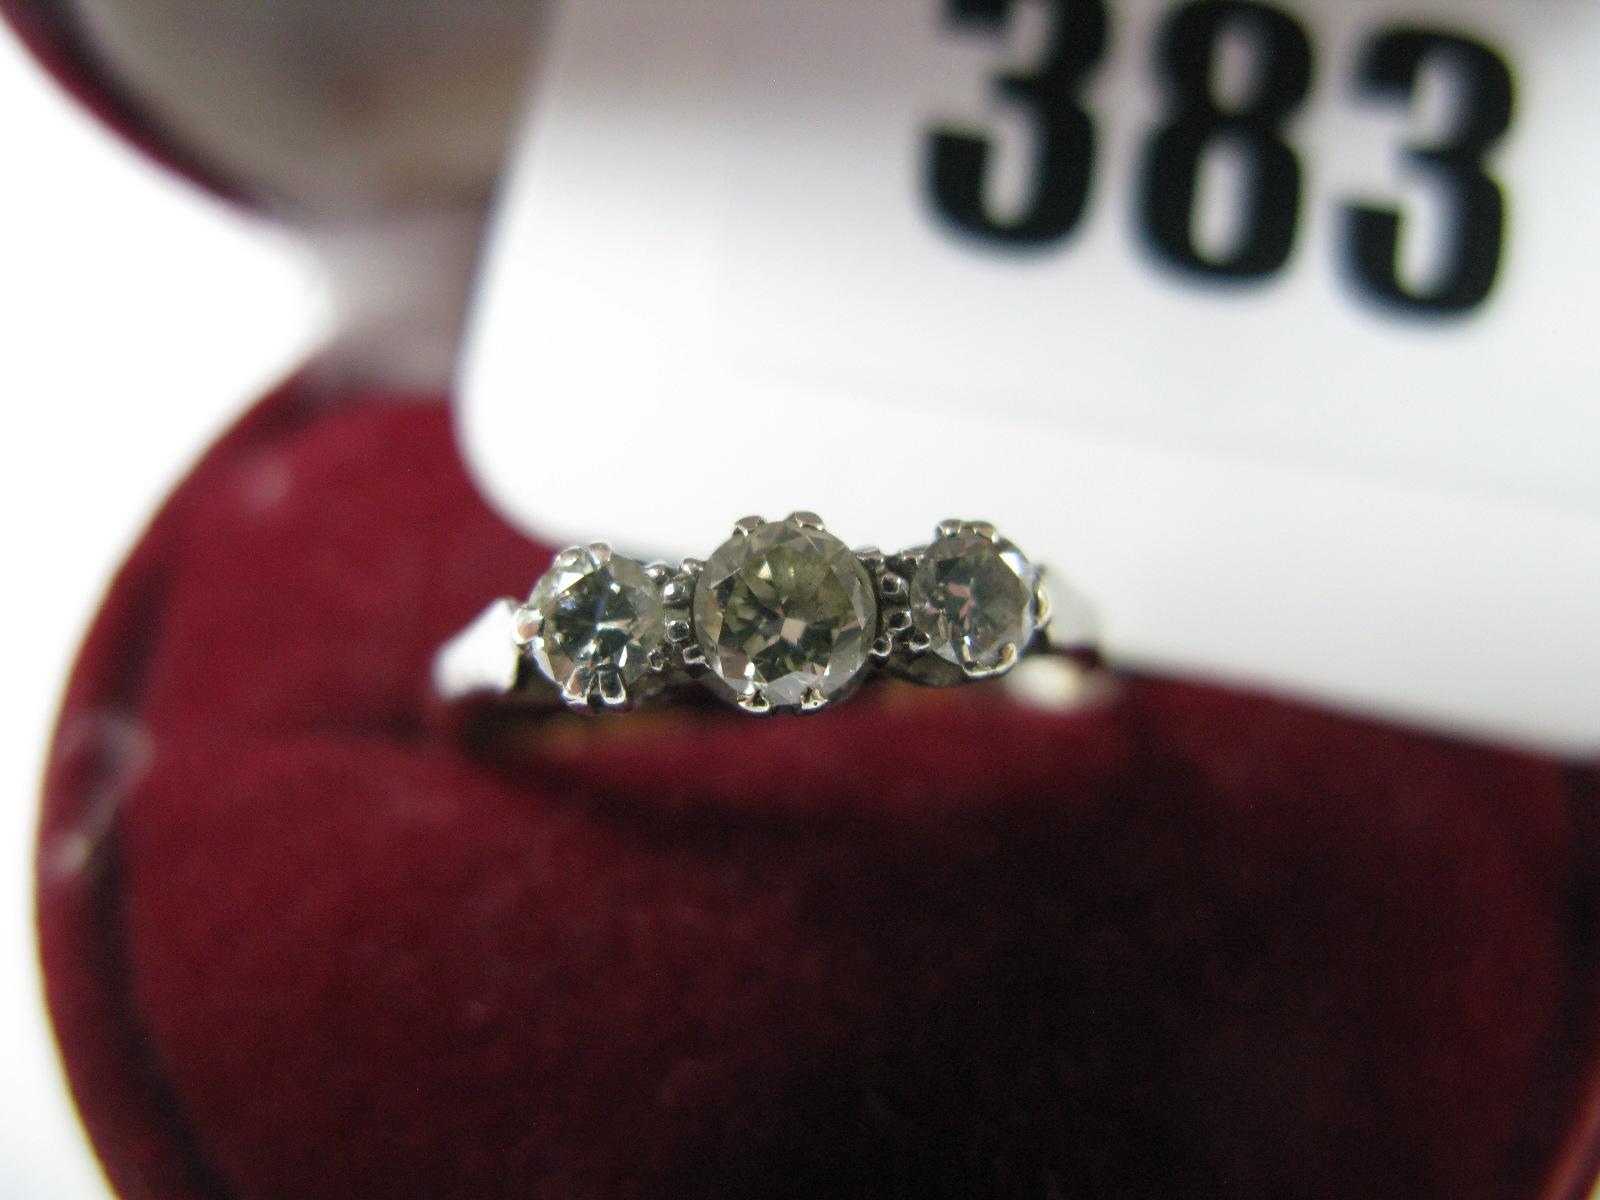 Lot 383 - A Three Stone Diamond Ring, the graduated brilliant cut stones claw set, between tapered